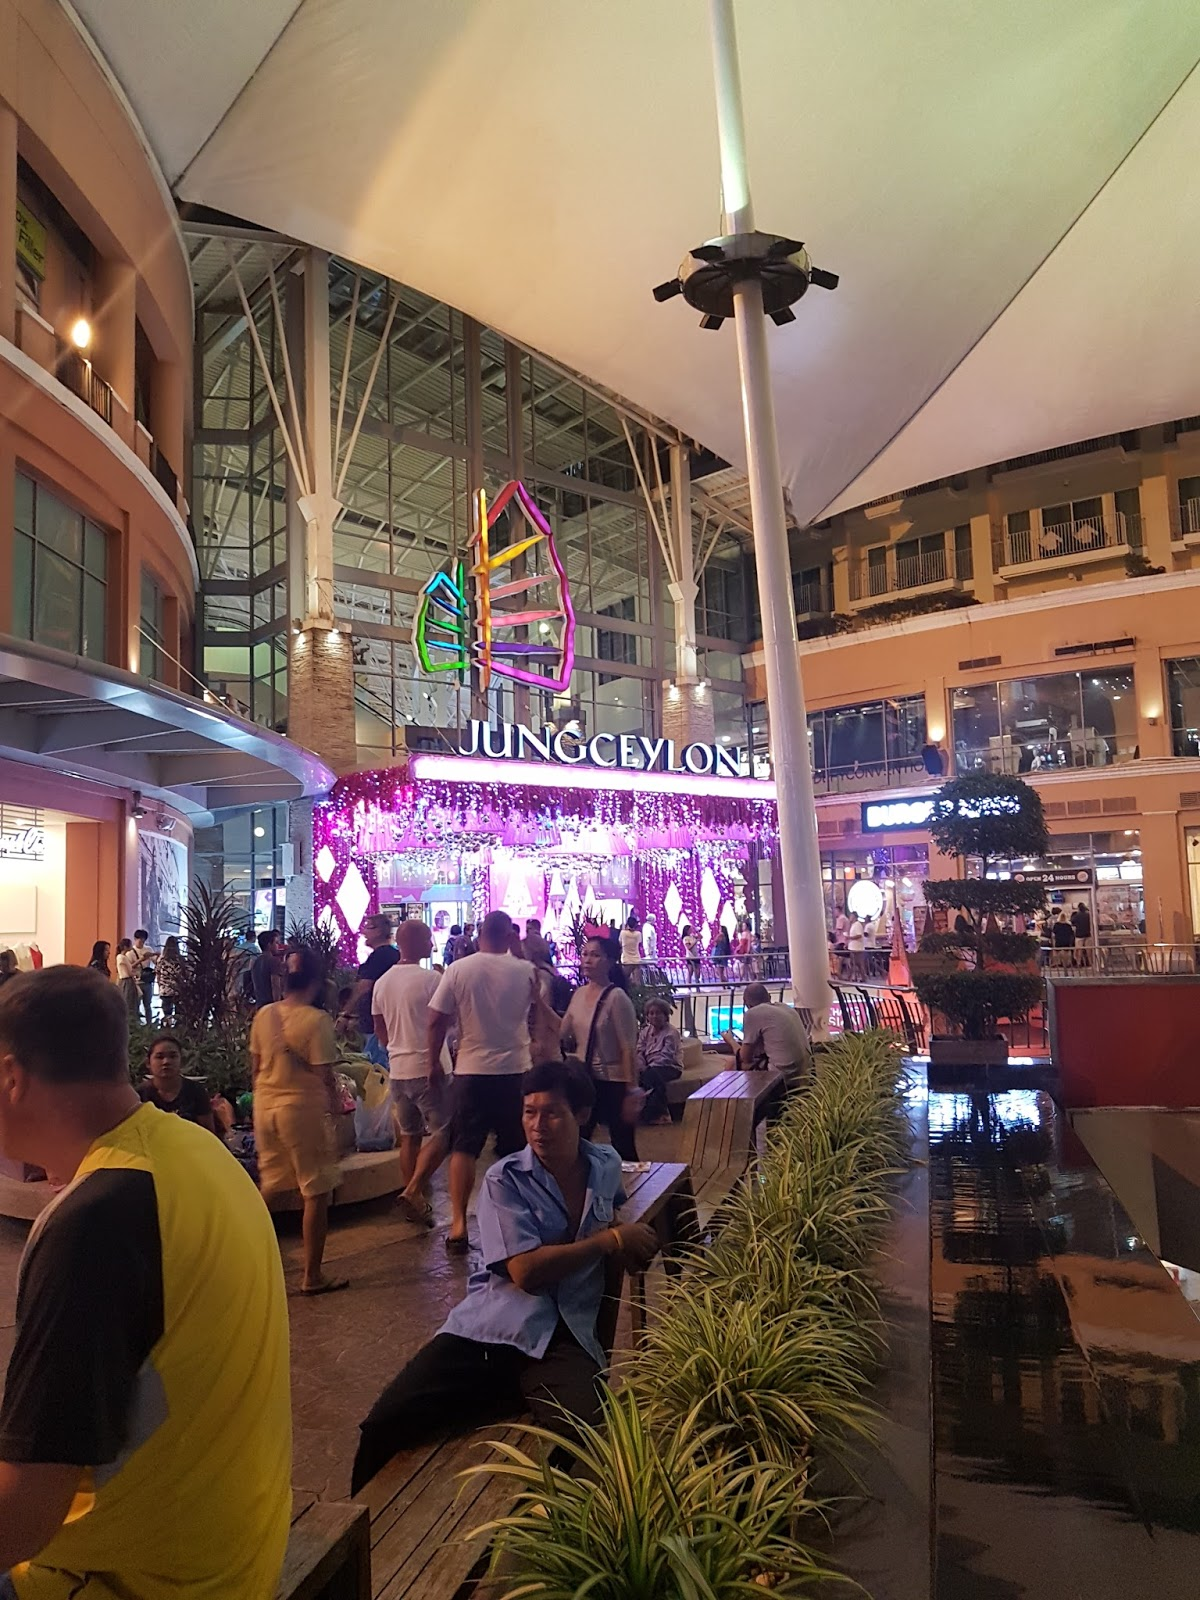 Jungceylon Mall, Patong, My time in Phuket